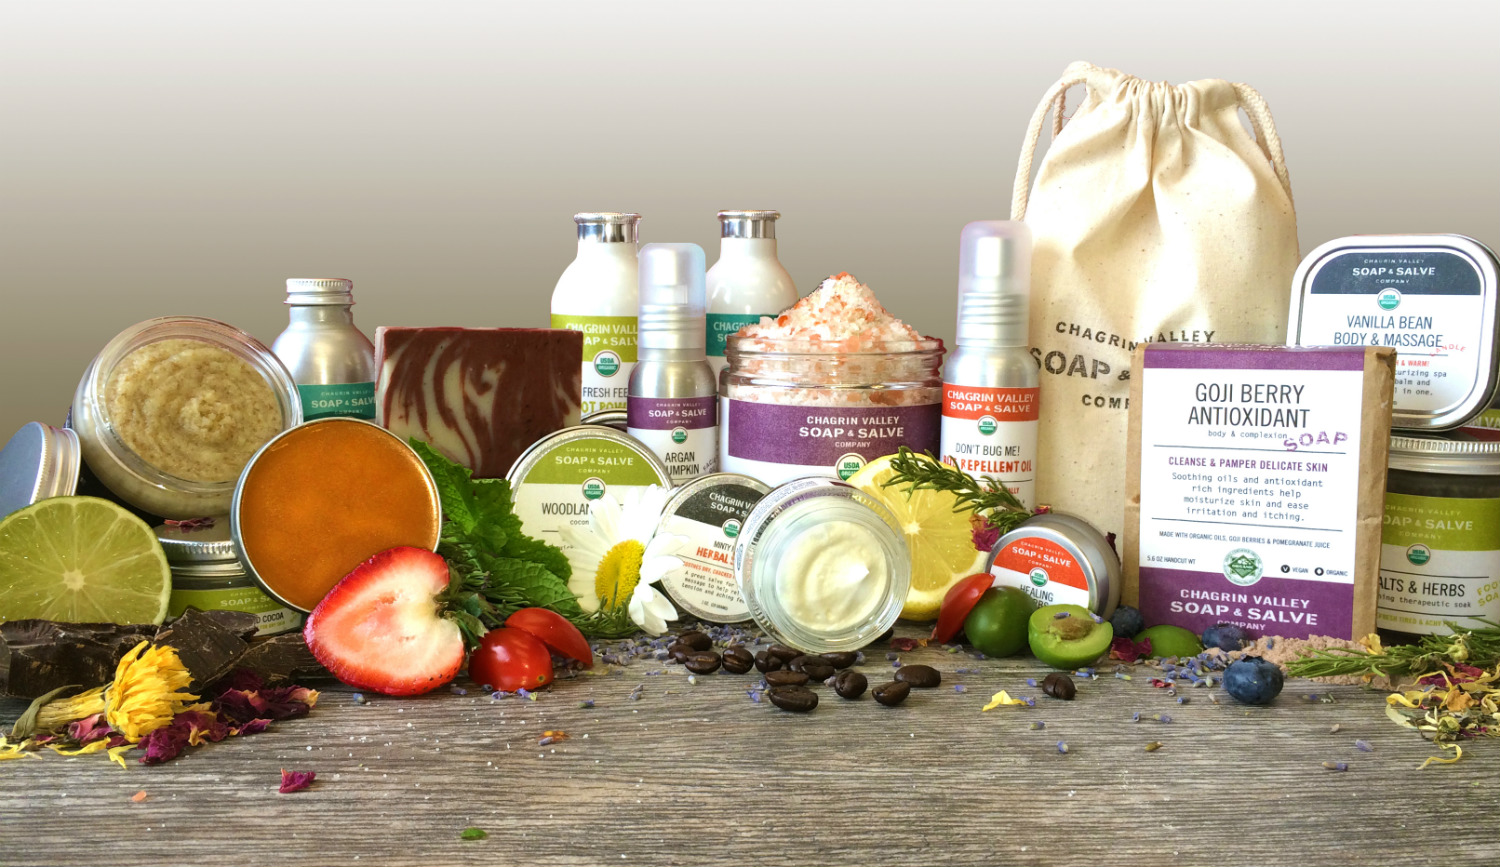 Chagrin Valley Soap and Salve Shampoo Bars and Other Personal Care Products, Image courtesy of Chagrin Valley Soap and Salve